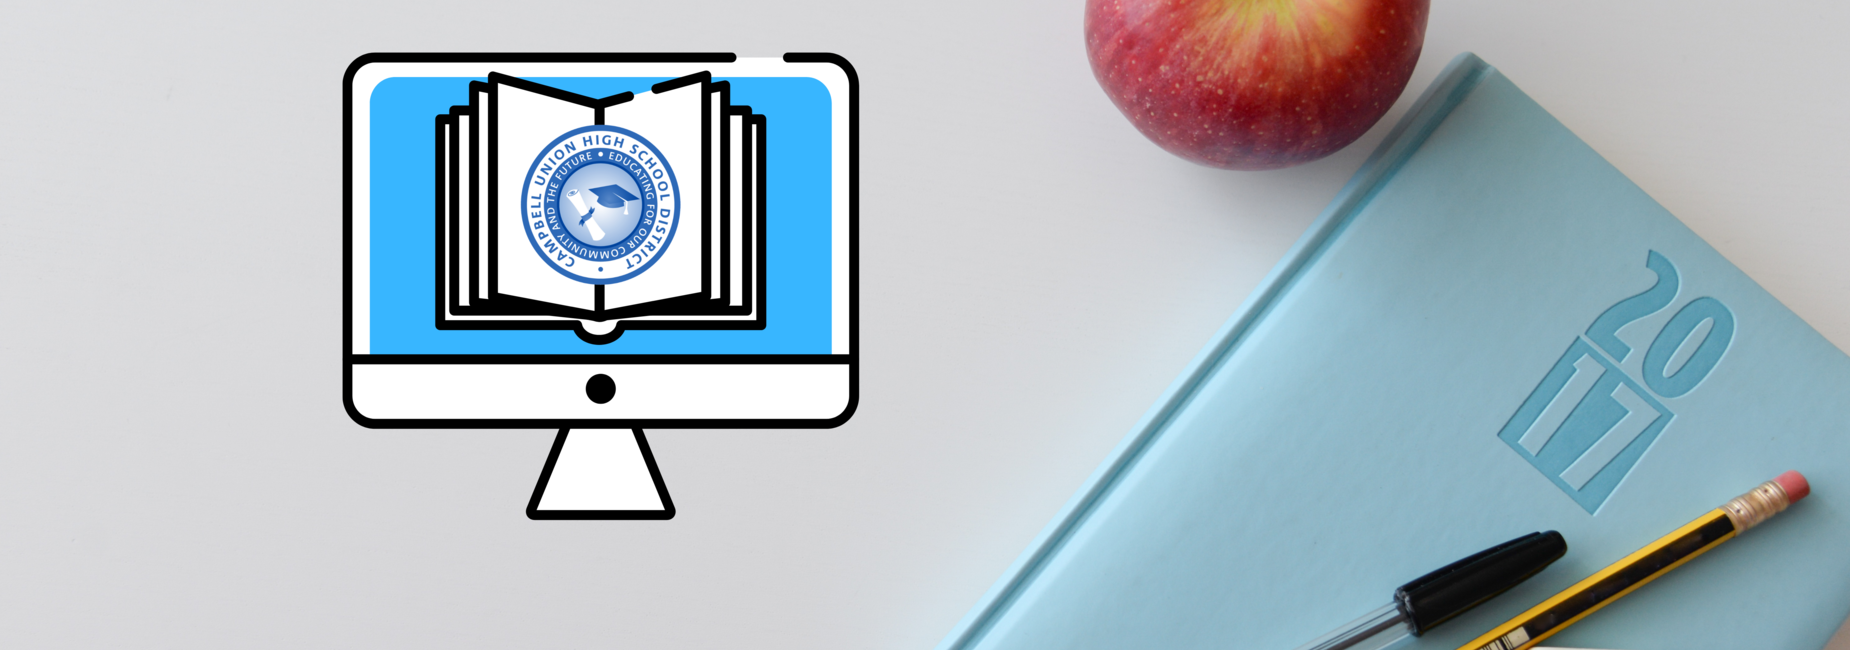 CUHSD Virtual Learning Academy logo and school supplies